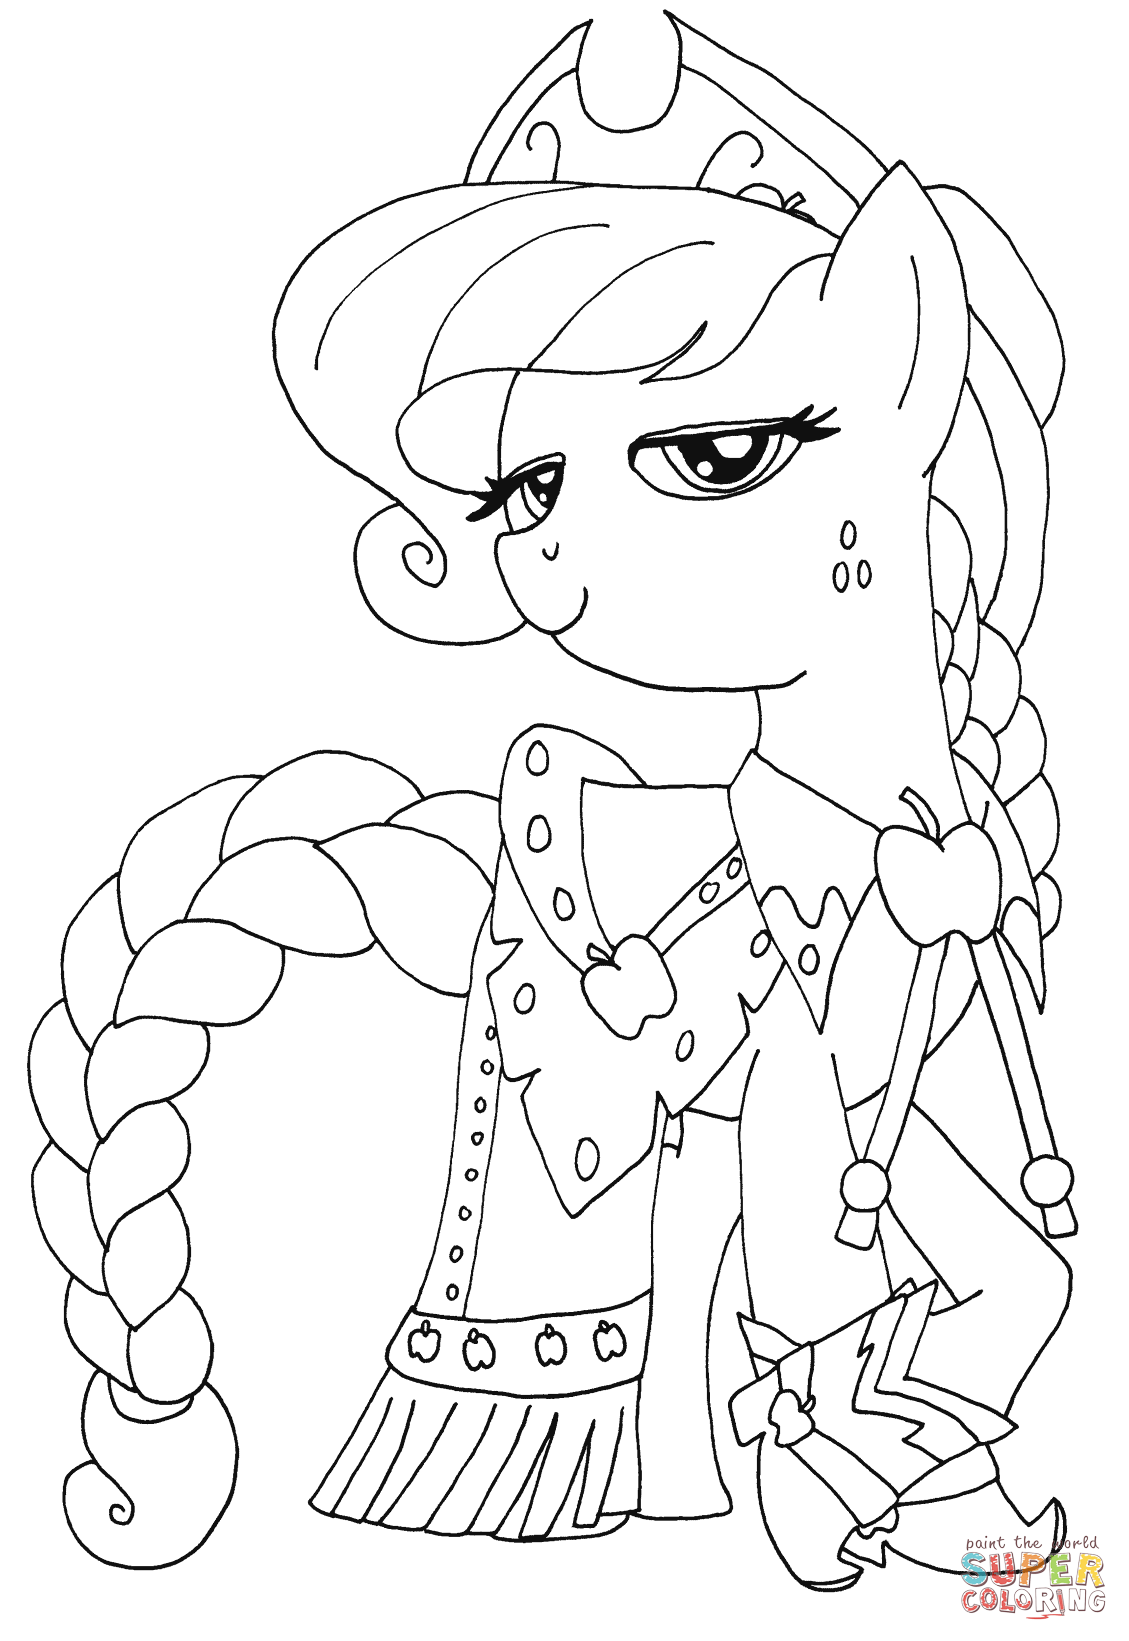 My Little Pony Fluttershy Ausmalbilder : My Little Pony Coloring Pages Pony Coloring Pages Mlp Coloring Pages